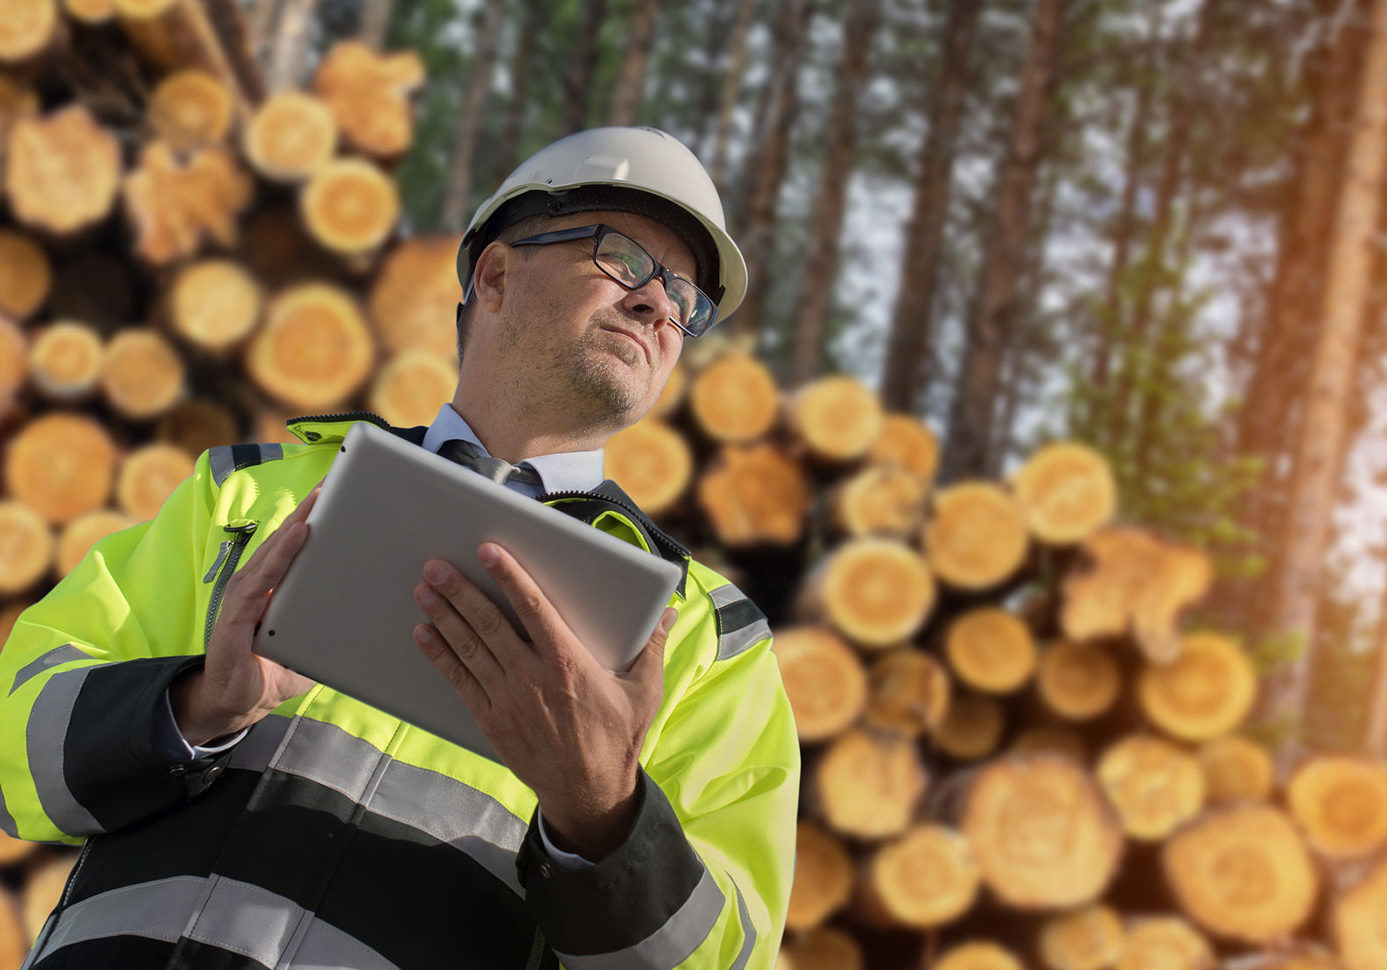 bigstock-Forestry-worker-with-digital-t-206257747